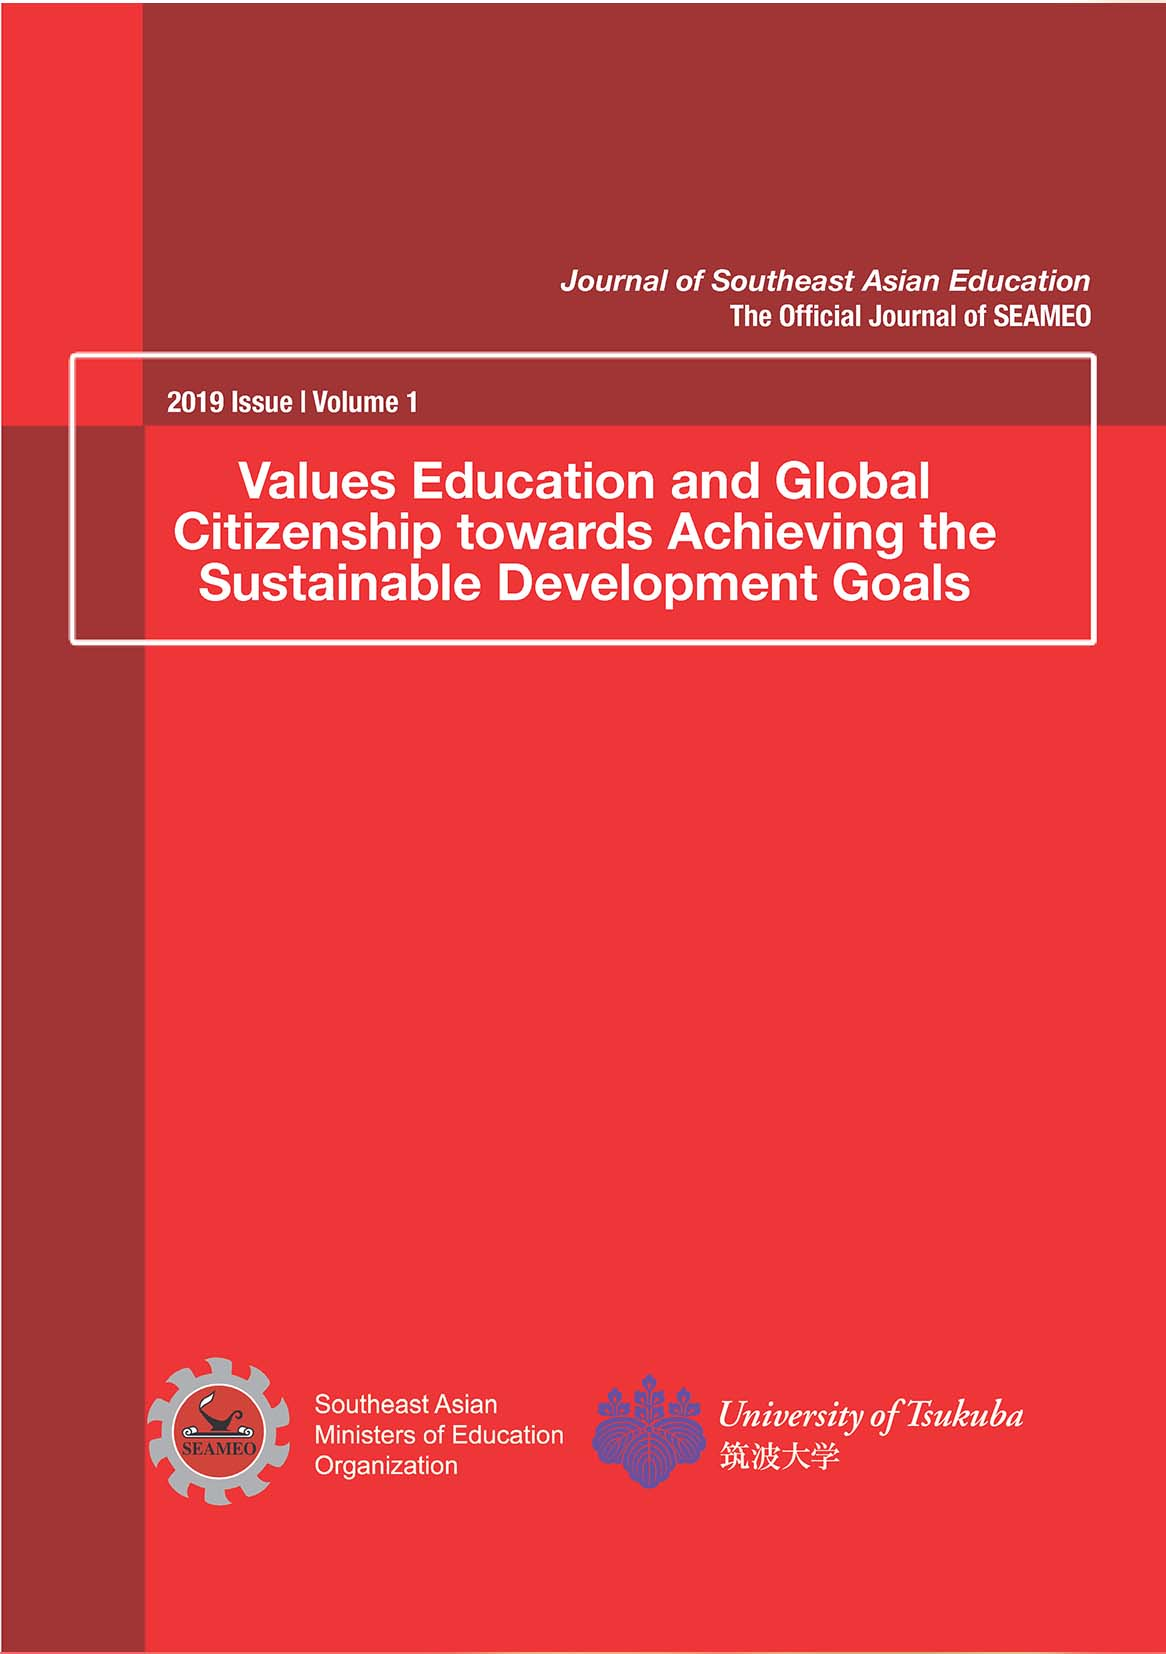 Journal of Southeast Asian Education 2019 Issue Volume 1